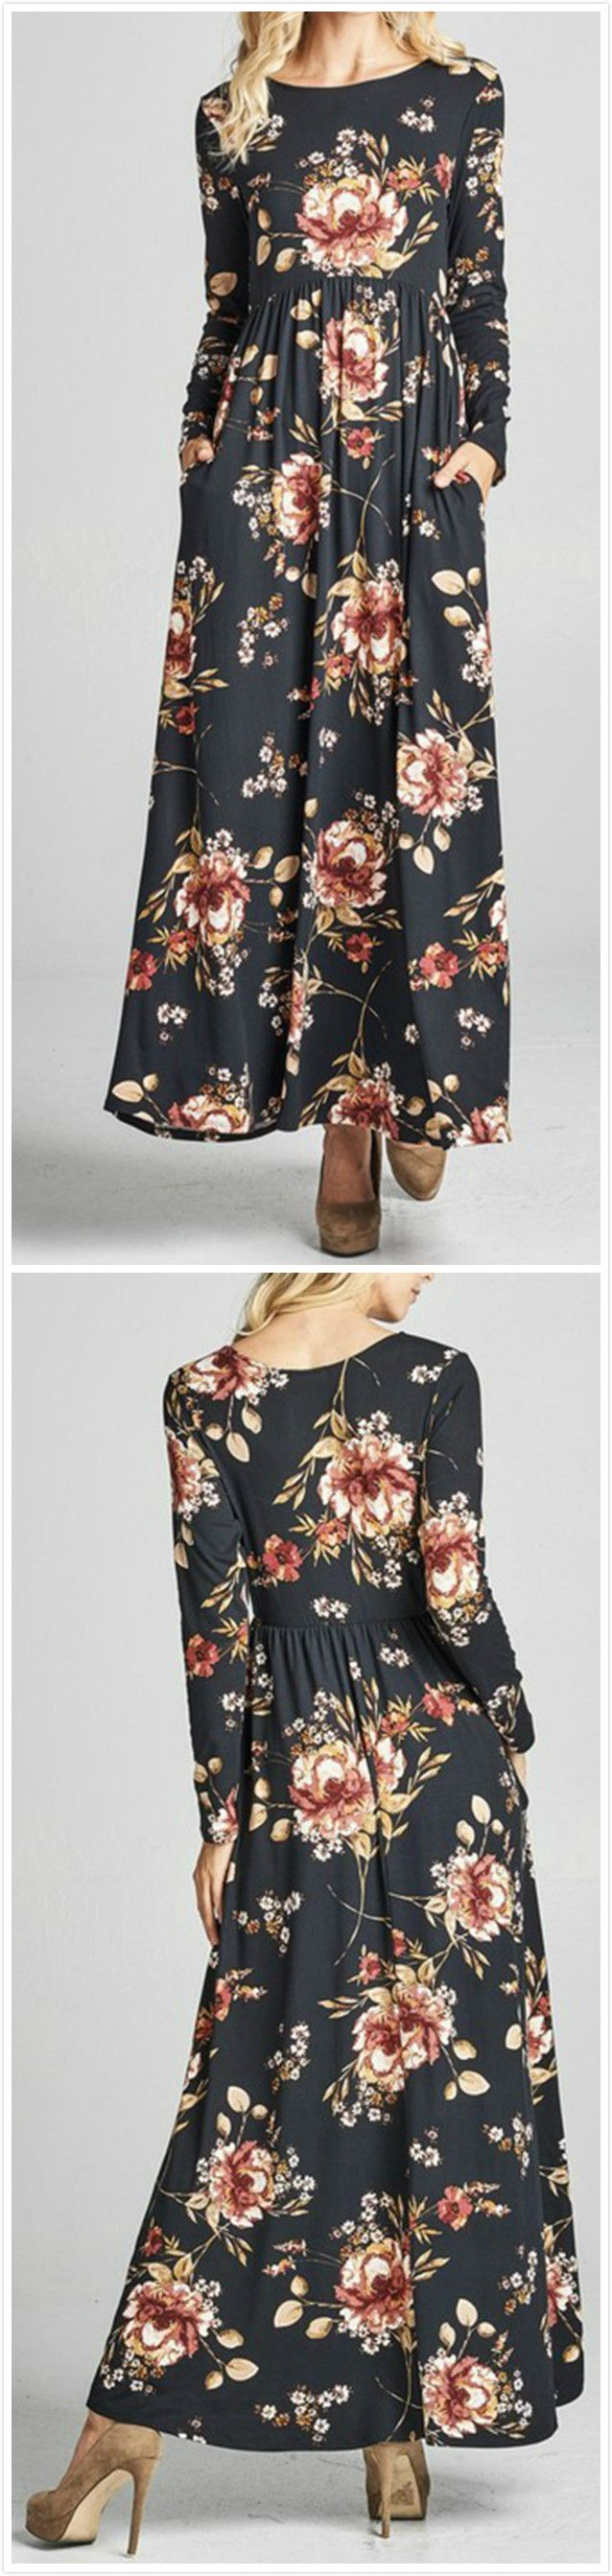 Elegant round neck long sleeve floral printed maxi dress luxury